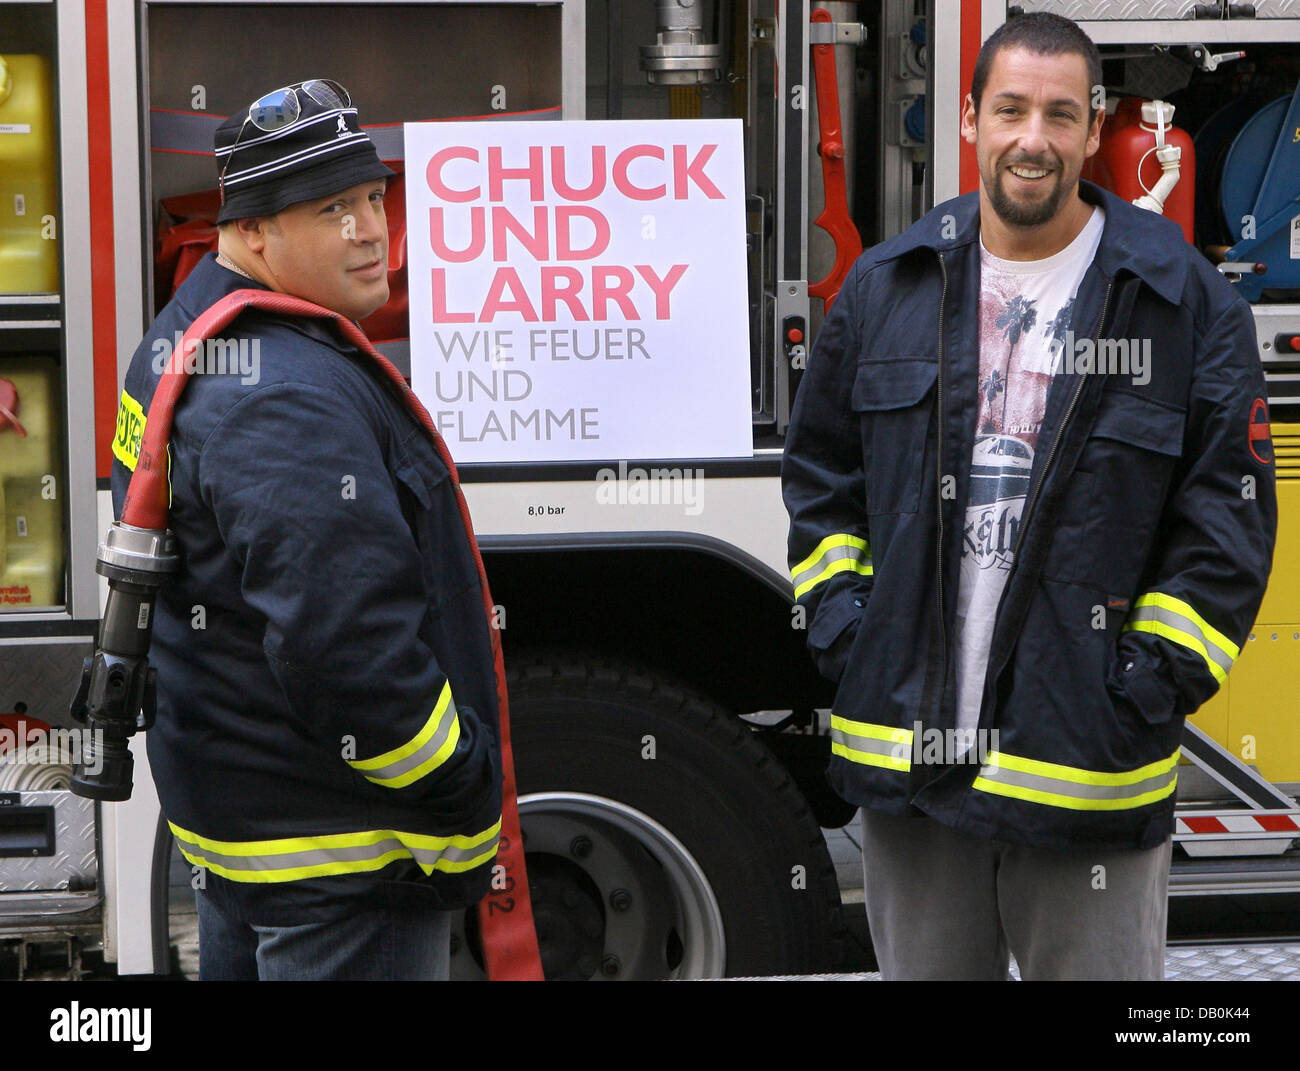 Actors Kevin James (L) and Adam Sandler pose in front of a fire